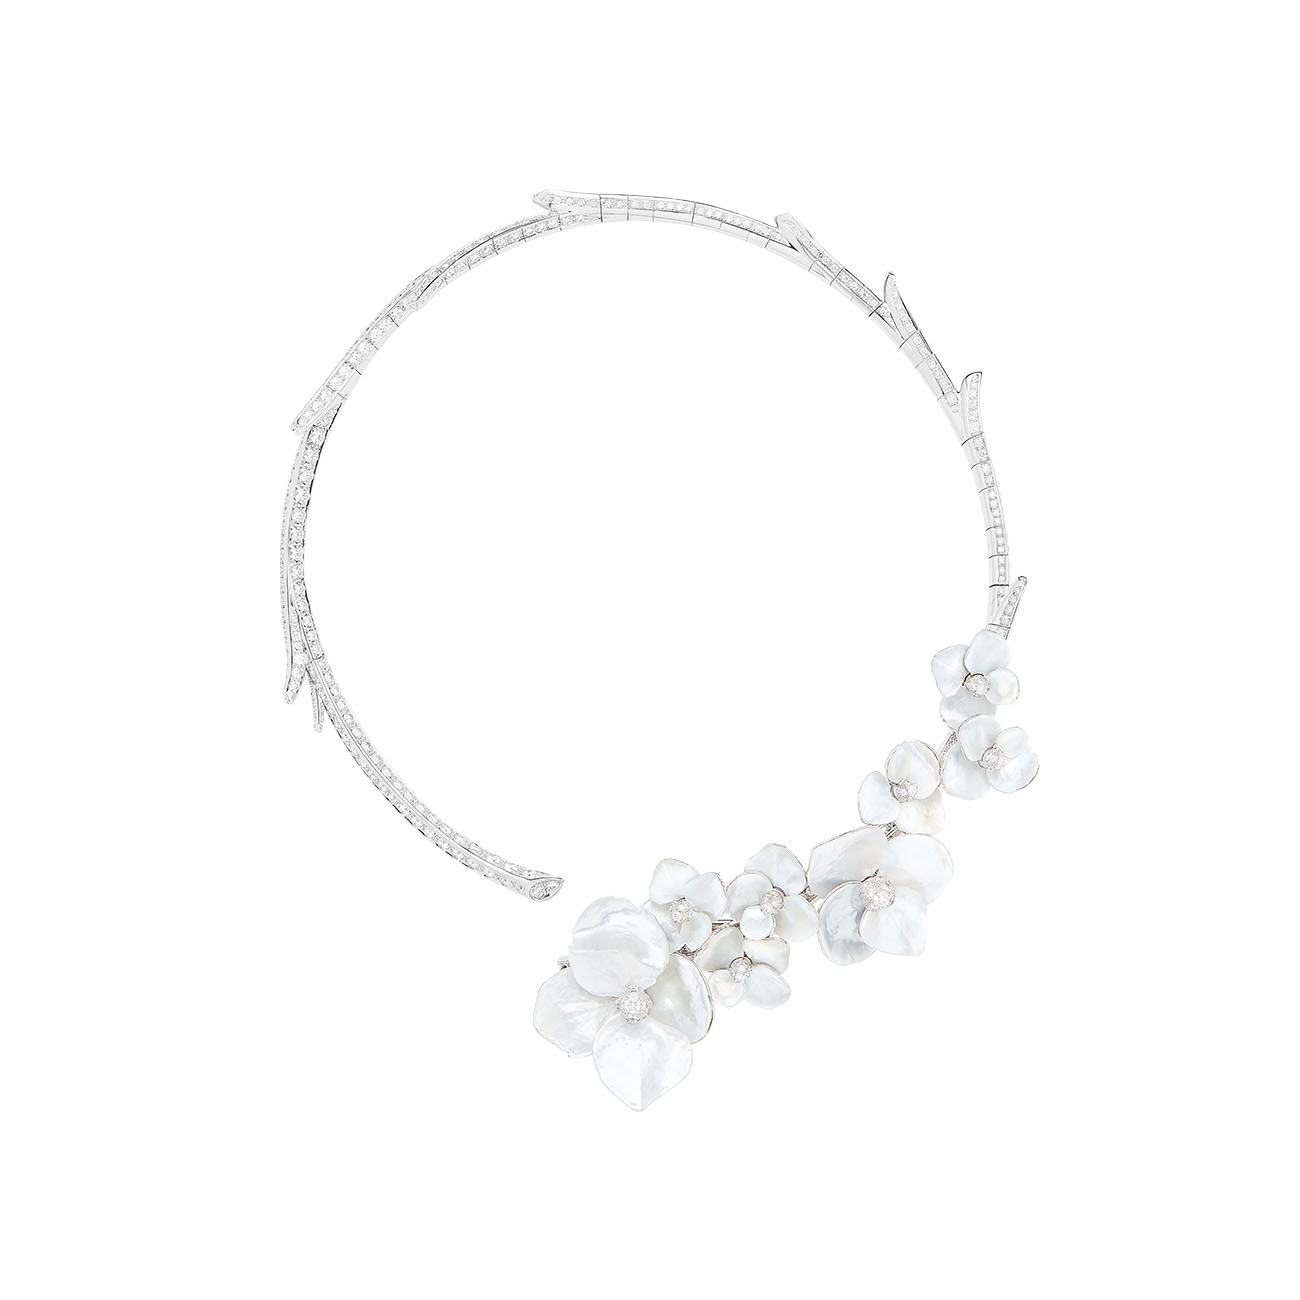 Boucheron - Nuage de Fleurs Question Mark necklace set with mother-of-pearl and diamonds (short version)